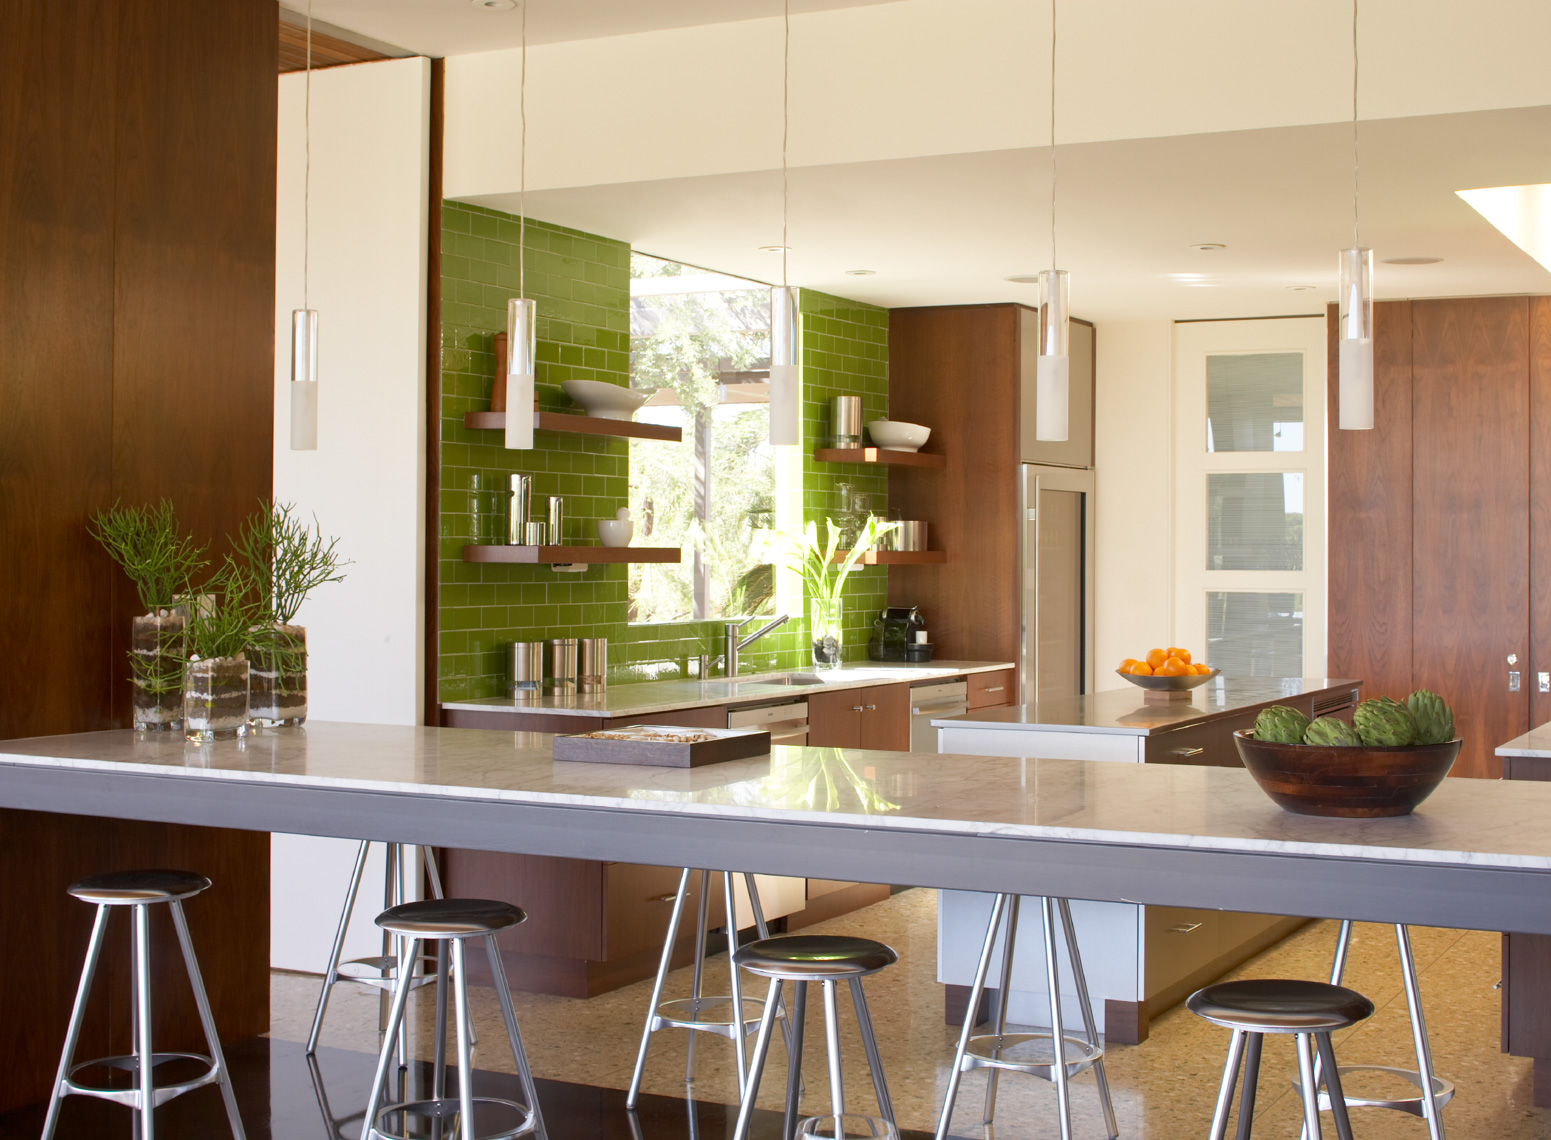 green-tiled kitchen interior with long white counter and stools